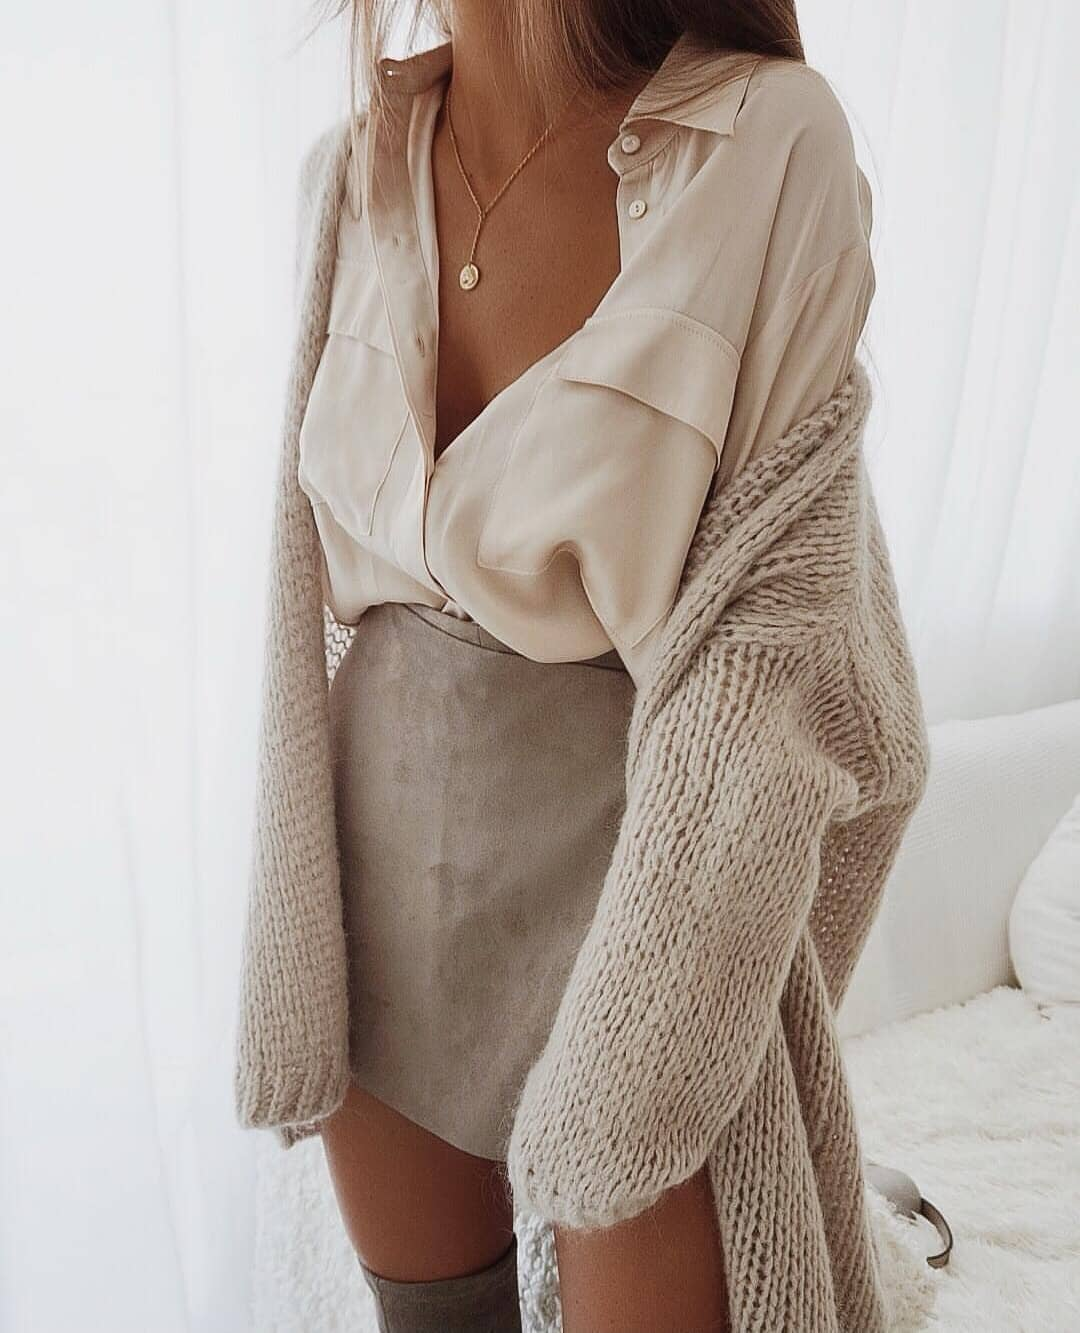 Fall Monochrome Essentials: Beige Shirt, Cream Suede Skirt And Beige Cardigan 2019